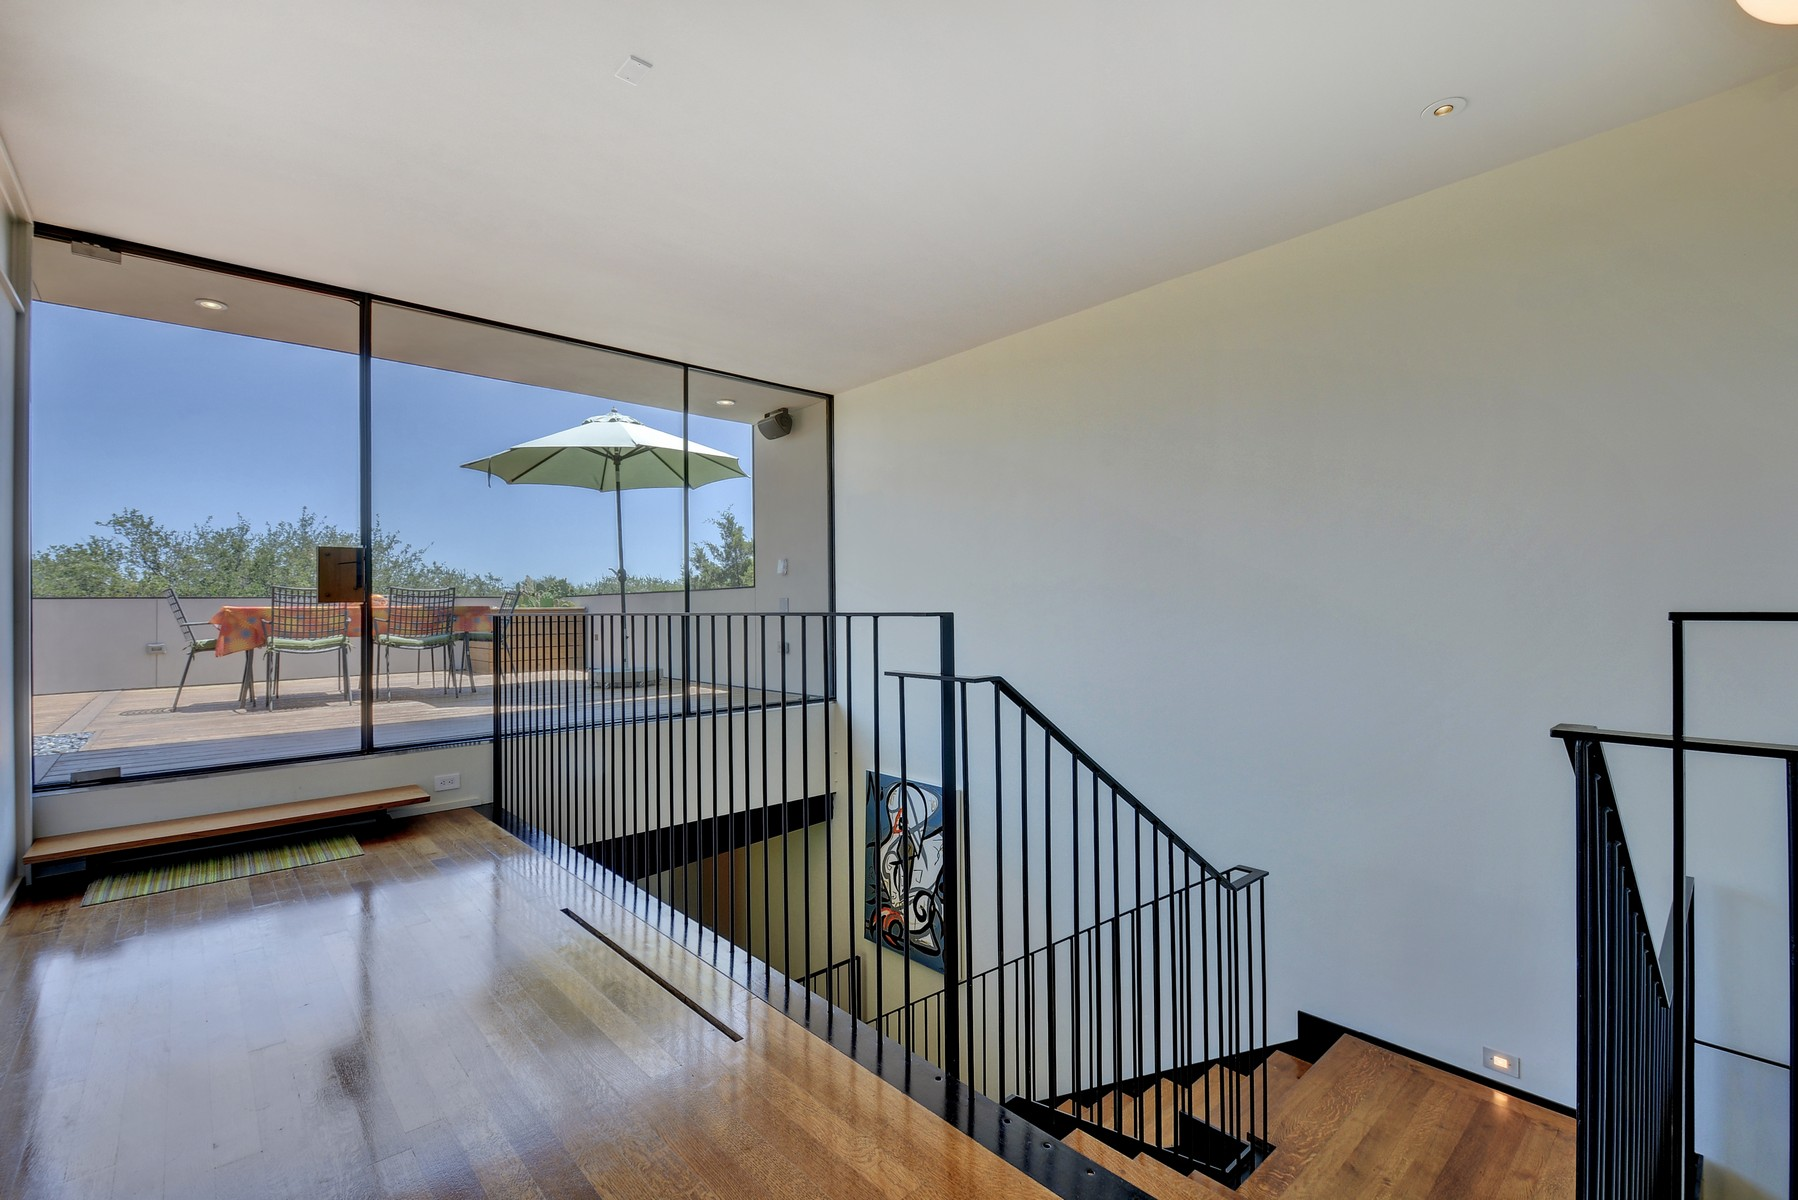 Additional photo for property listing at Unique Modern Home Built by NYC Architect 2008 Rue De St Tropez Austin, Texas 78746 United States